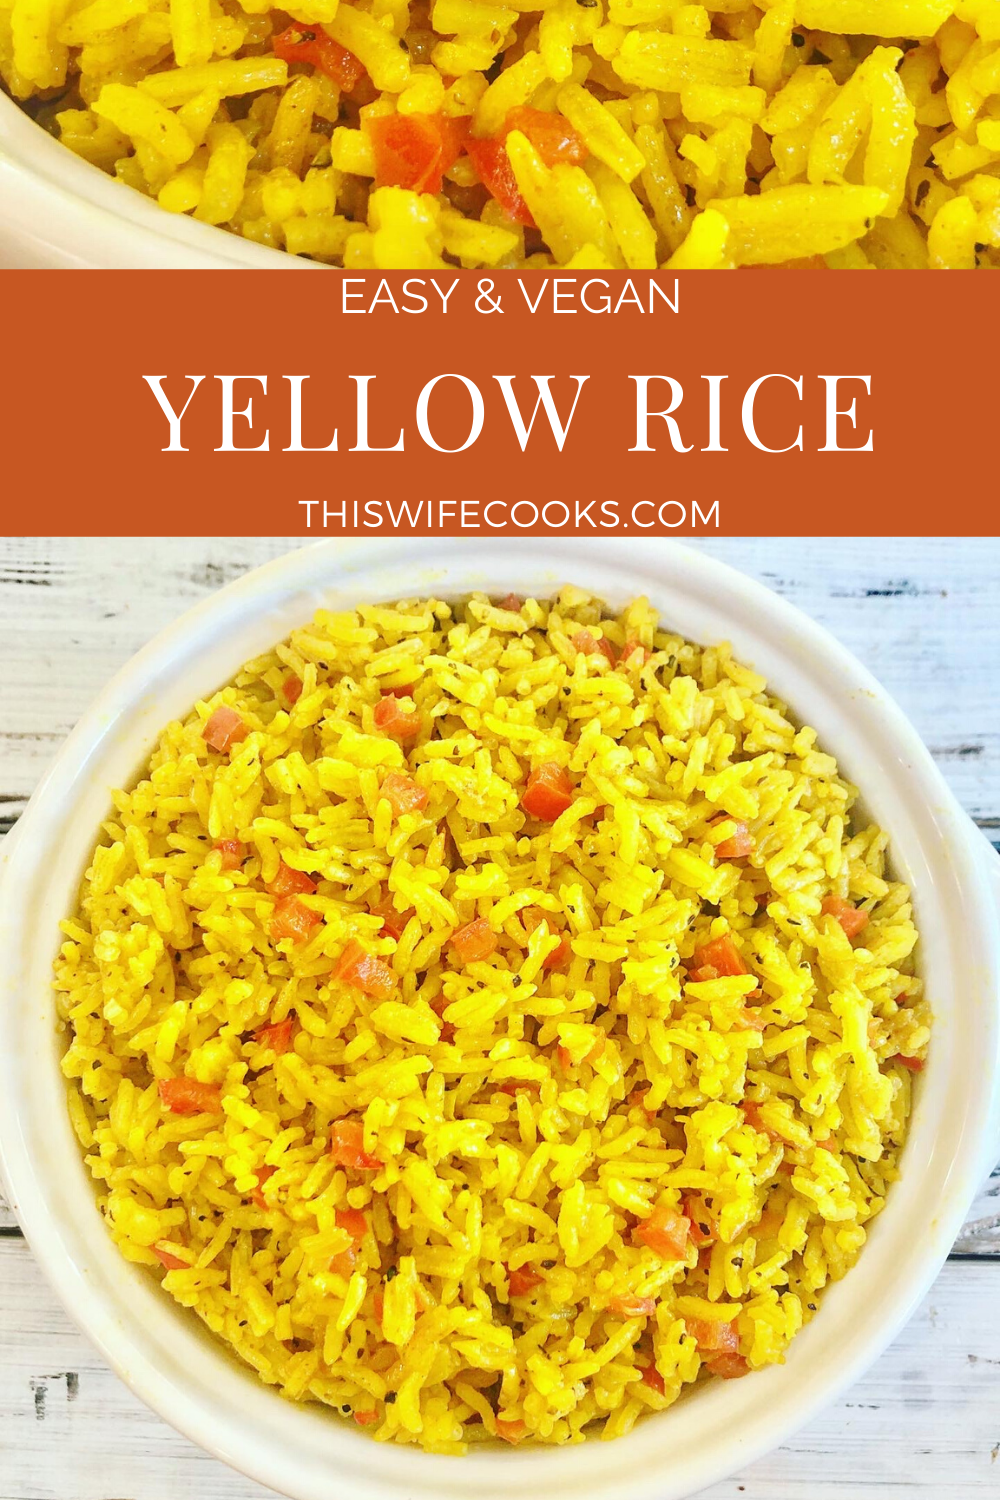 Arroz Amarillo - Spanish for Yellow Rice - is savory turmeric spiced rice that is easy to make with simple ingredients. Ready to serve in under 30 minutes. via @thiswifecooks